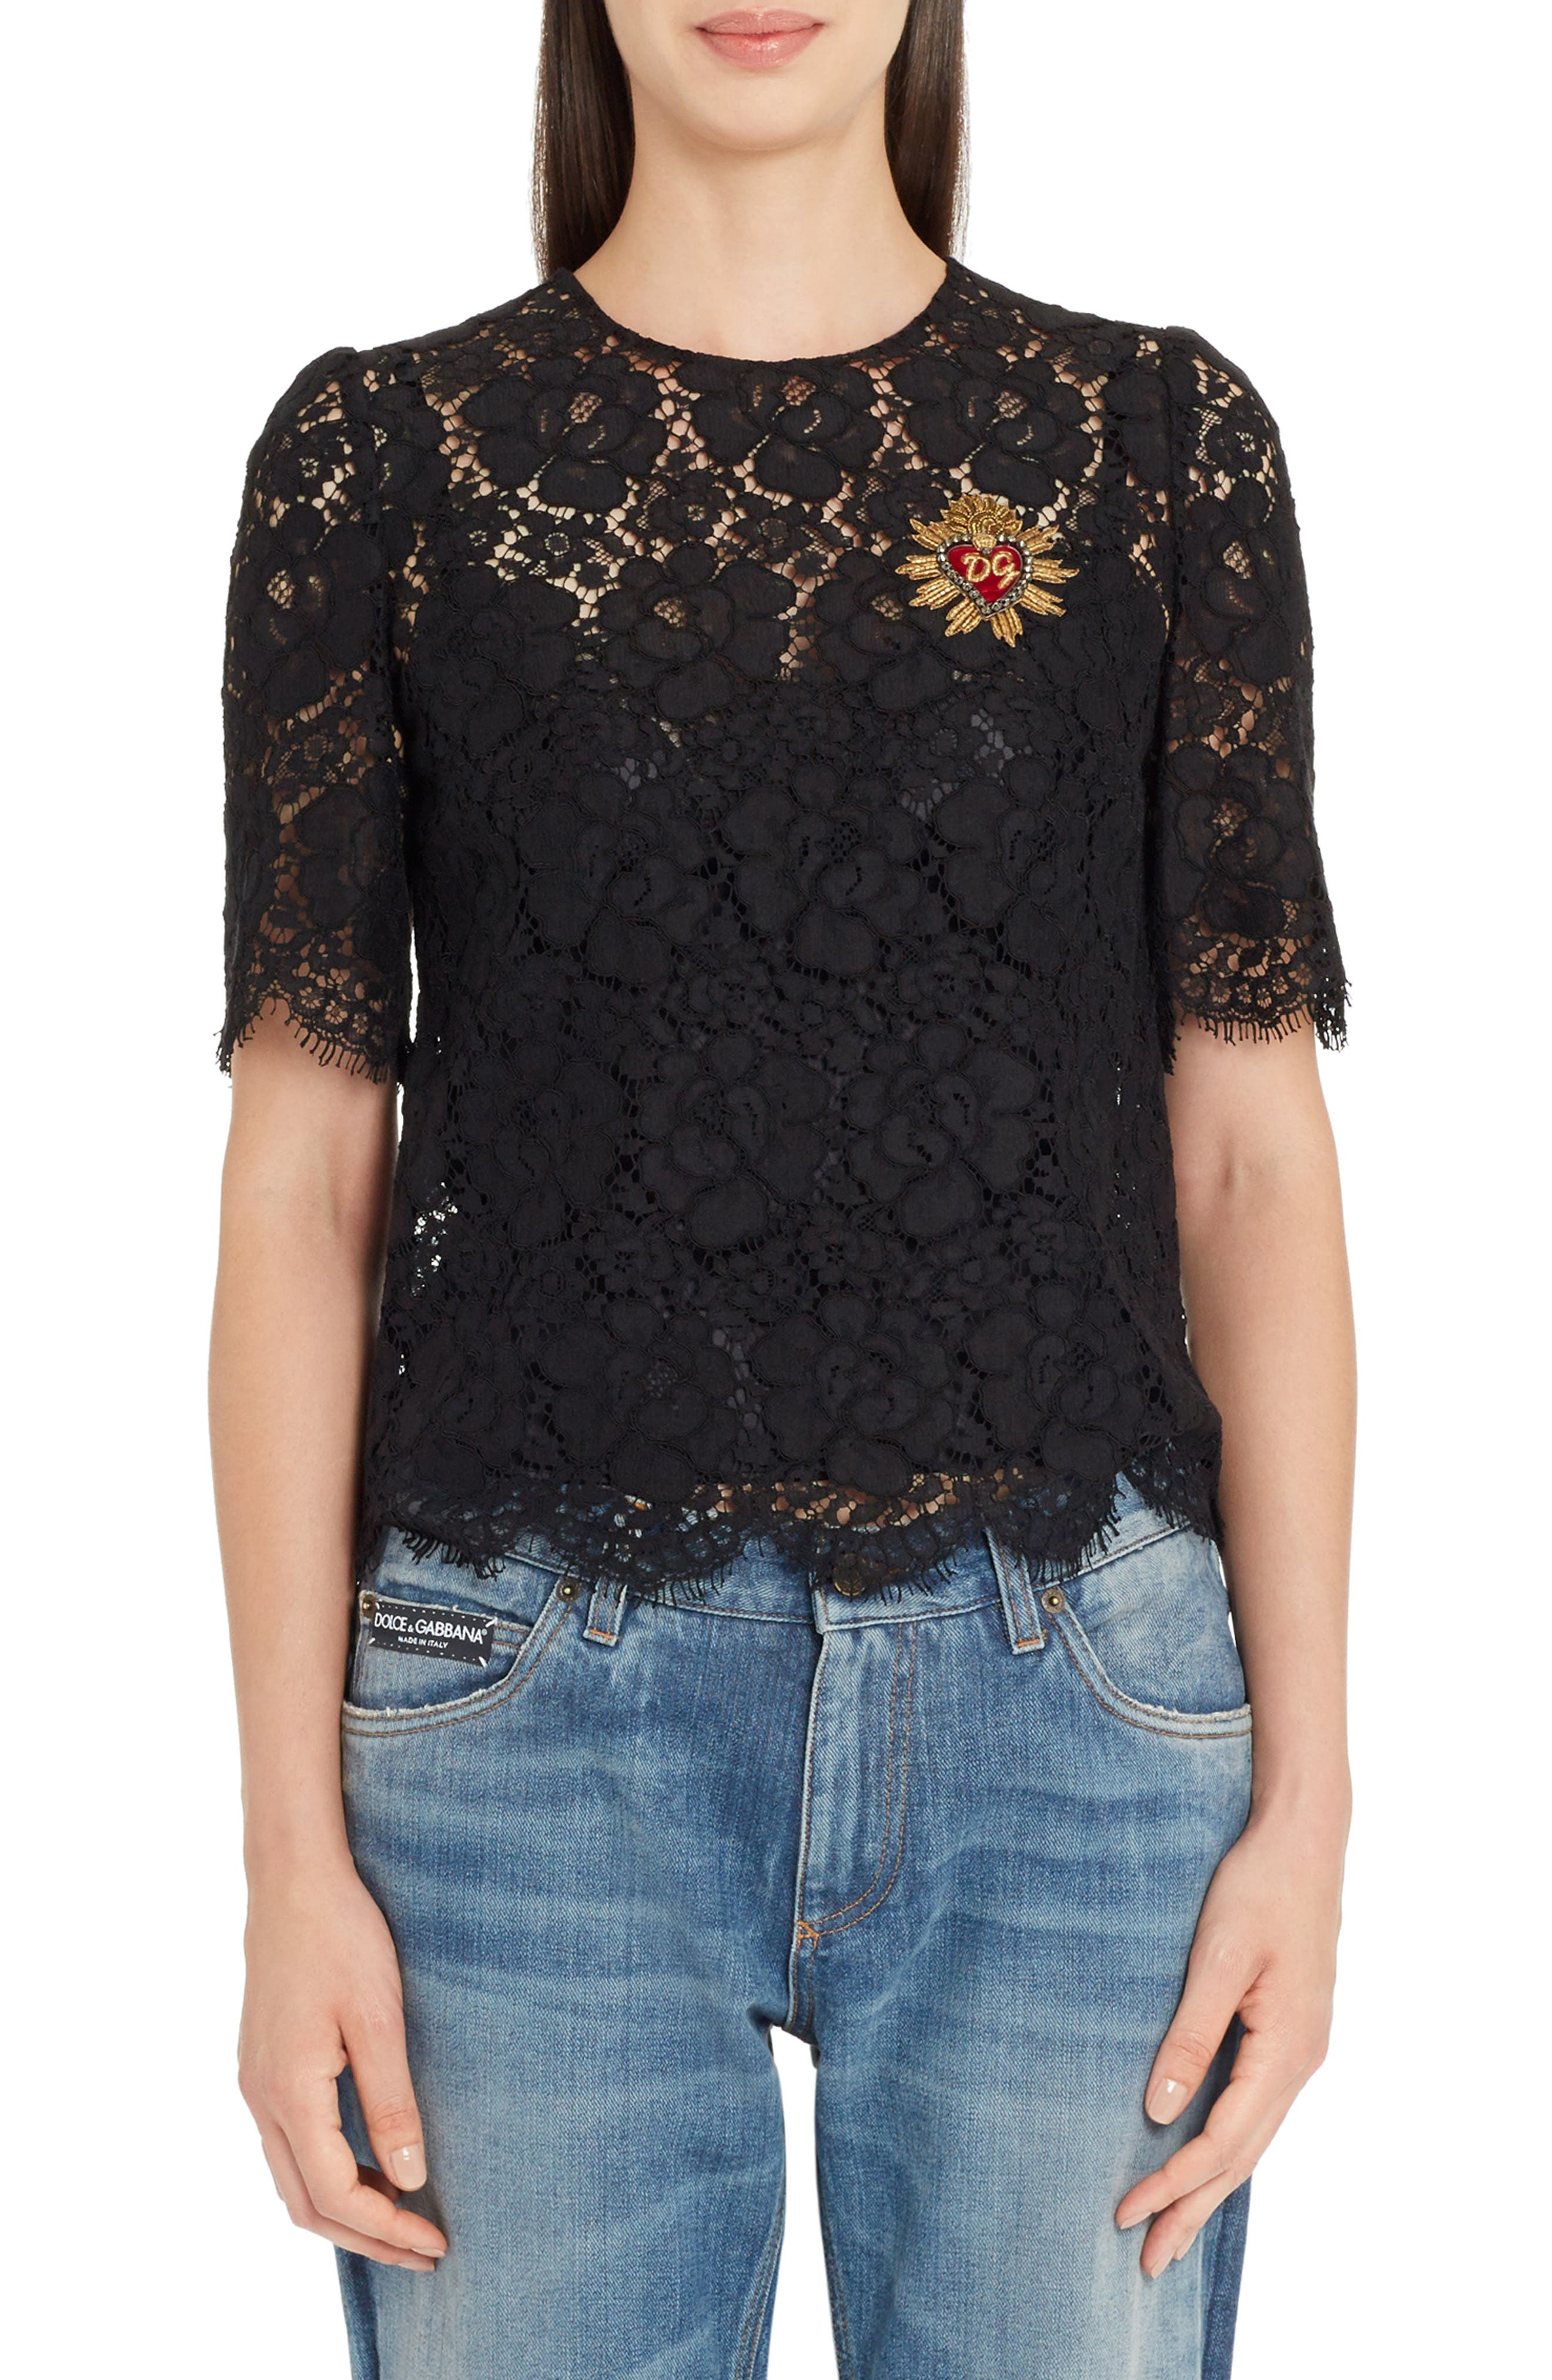 Main Image - Dolce&Gabbana Heart Patch Lace Top